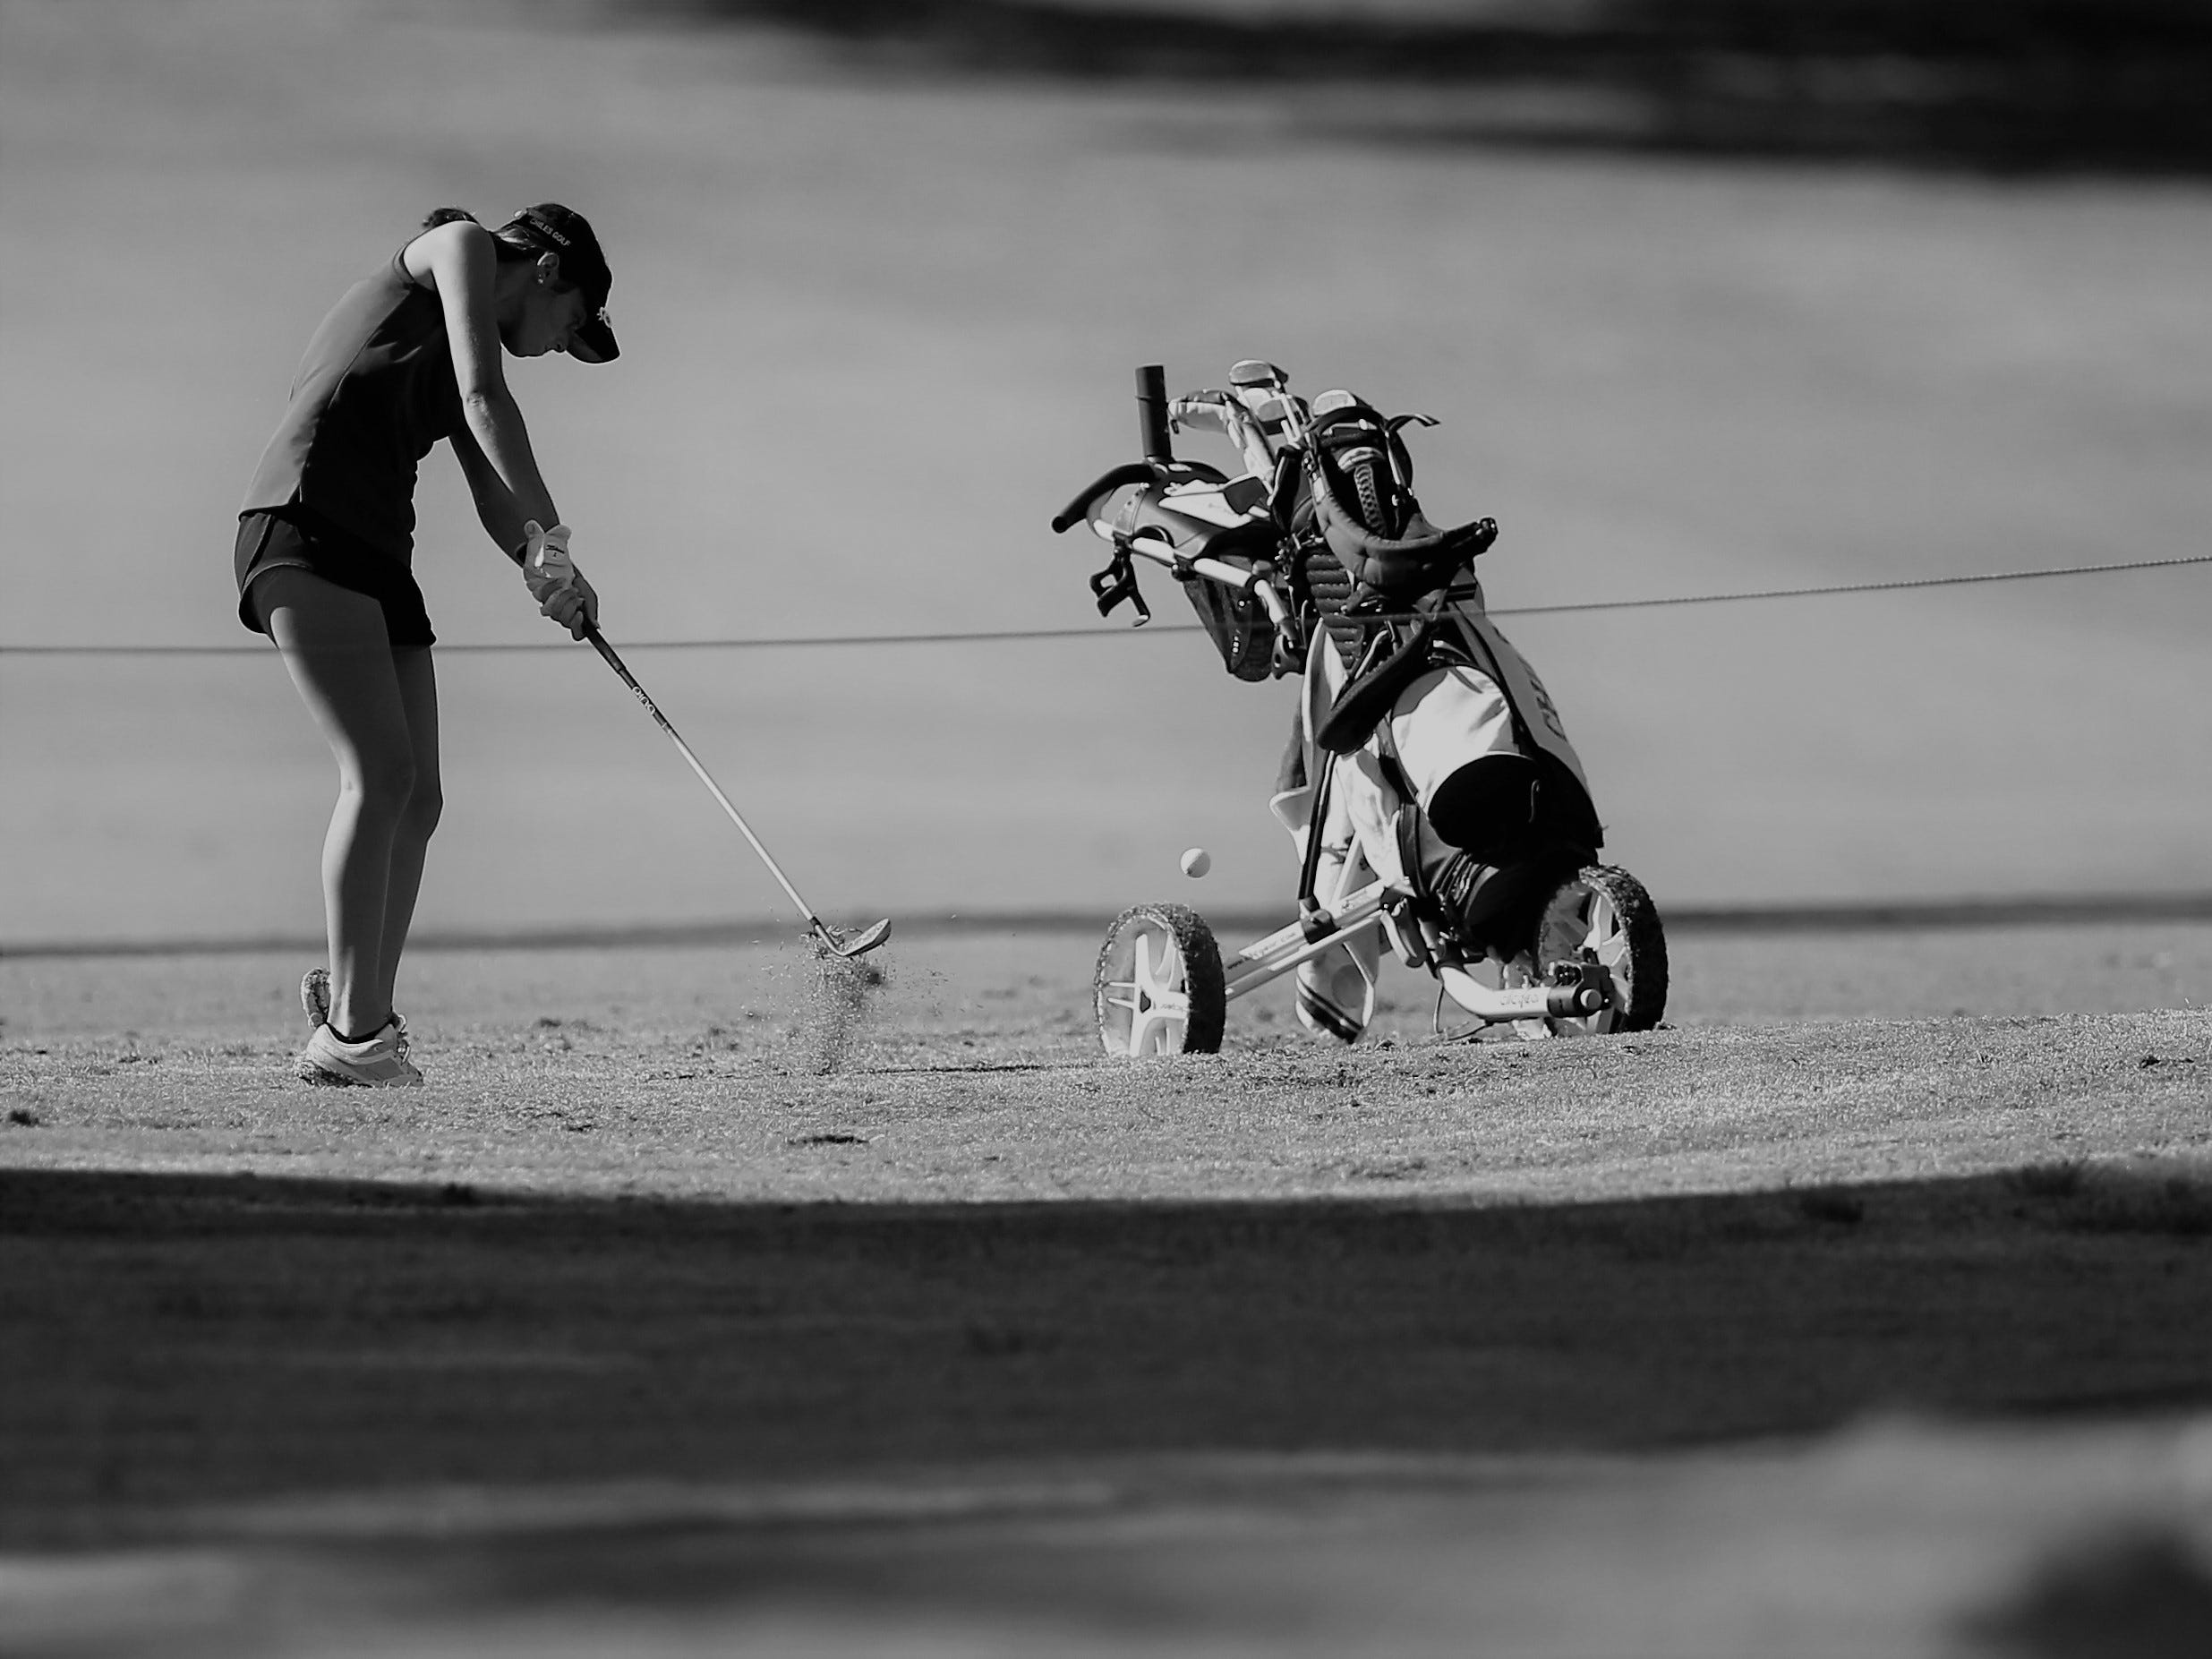 Chiles sophomore Abby LaMothe plays int he girls golf Panhandle Invitational at Killearn Country Club, Oct. 4, 2018.